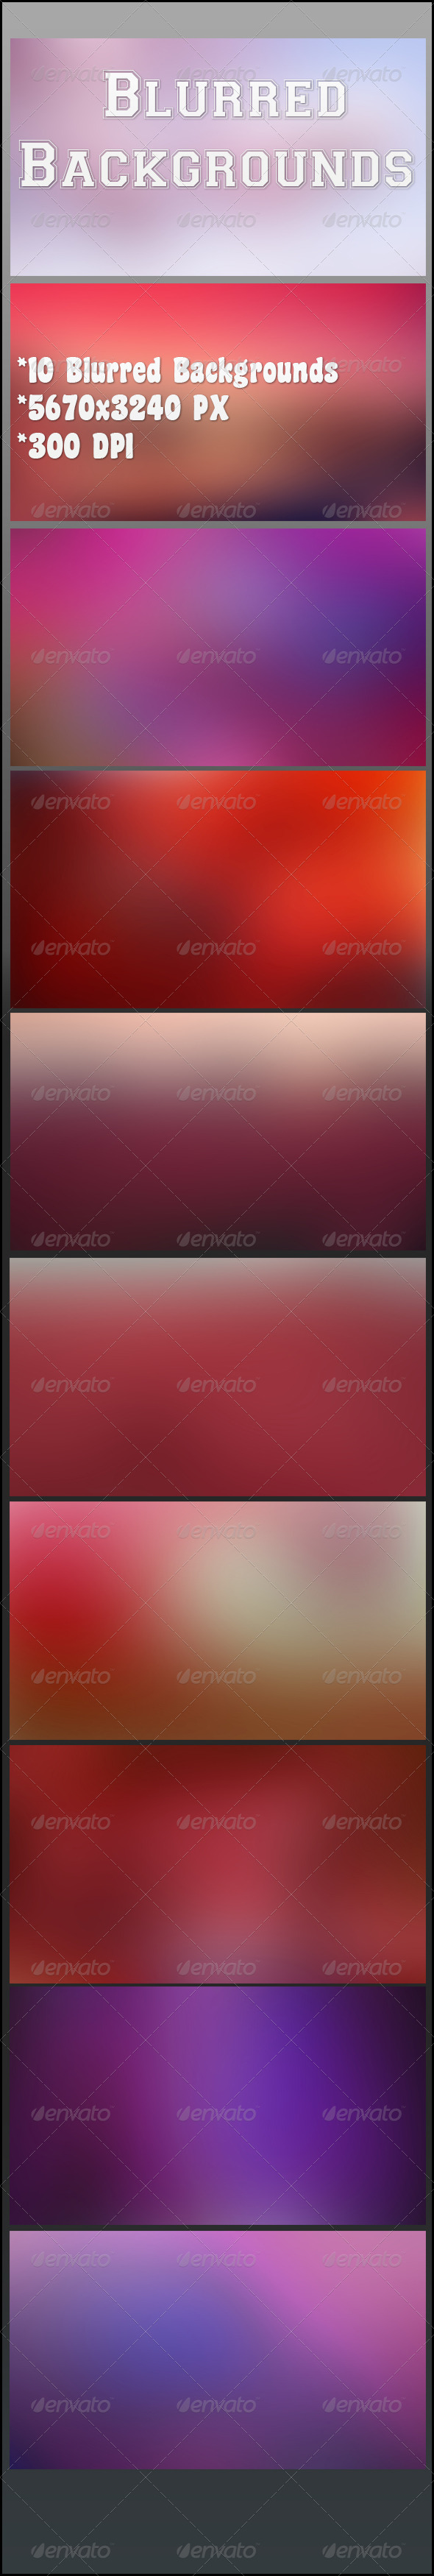 GraphicRiver Blurred Backgrounds 8077547